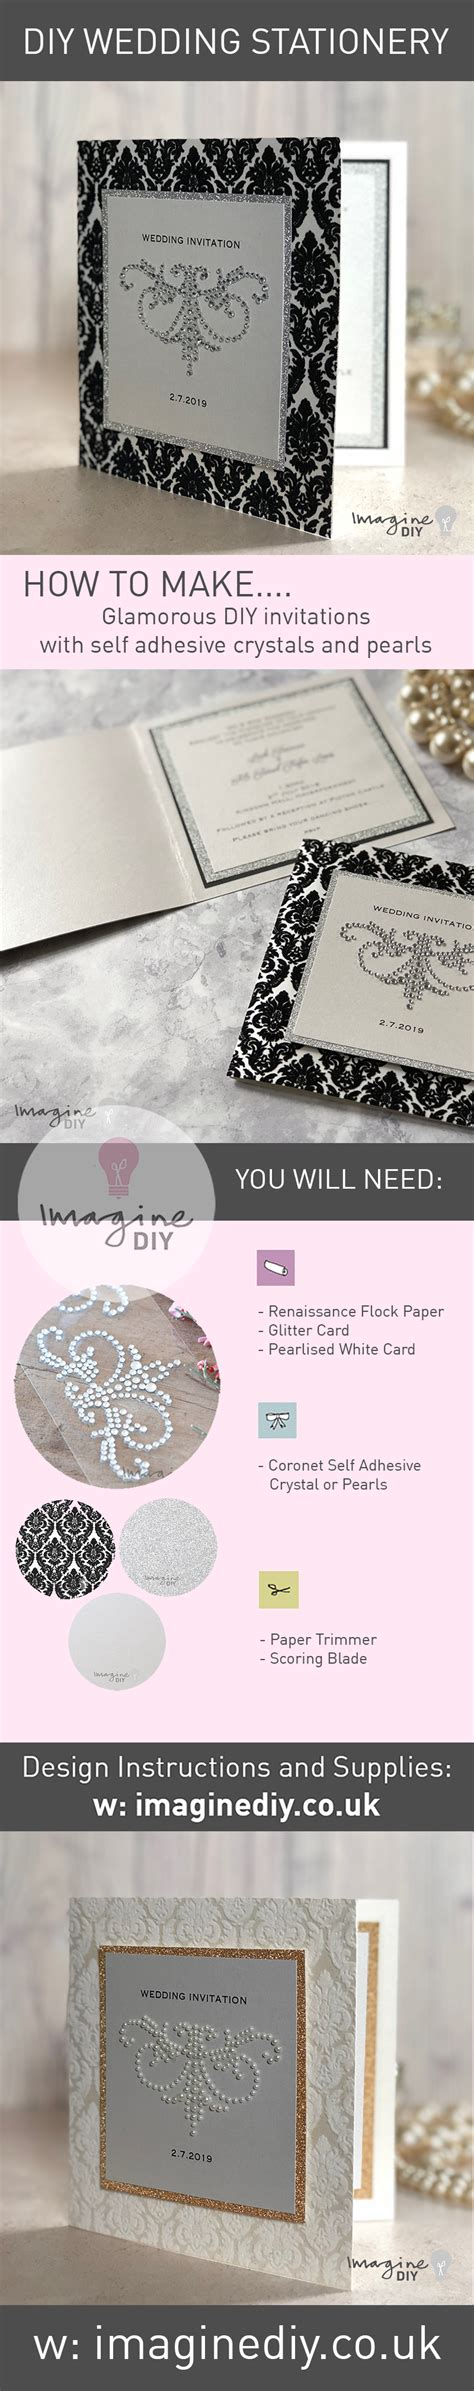 how to make glamorous diy wedding invitations with